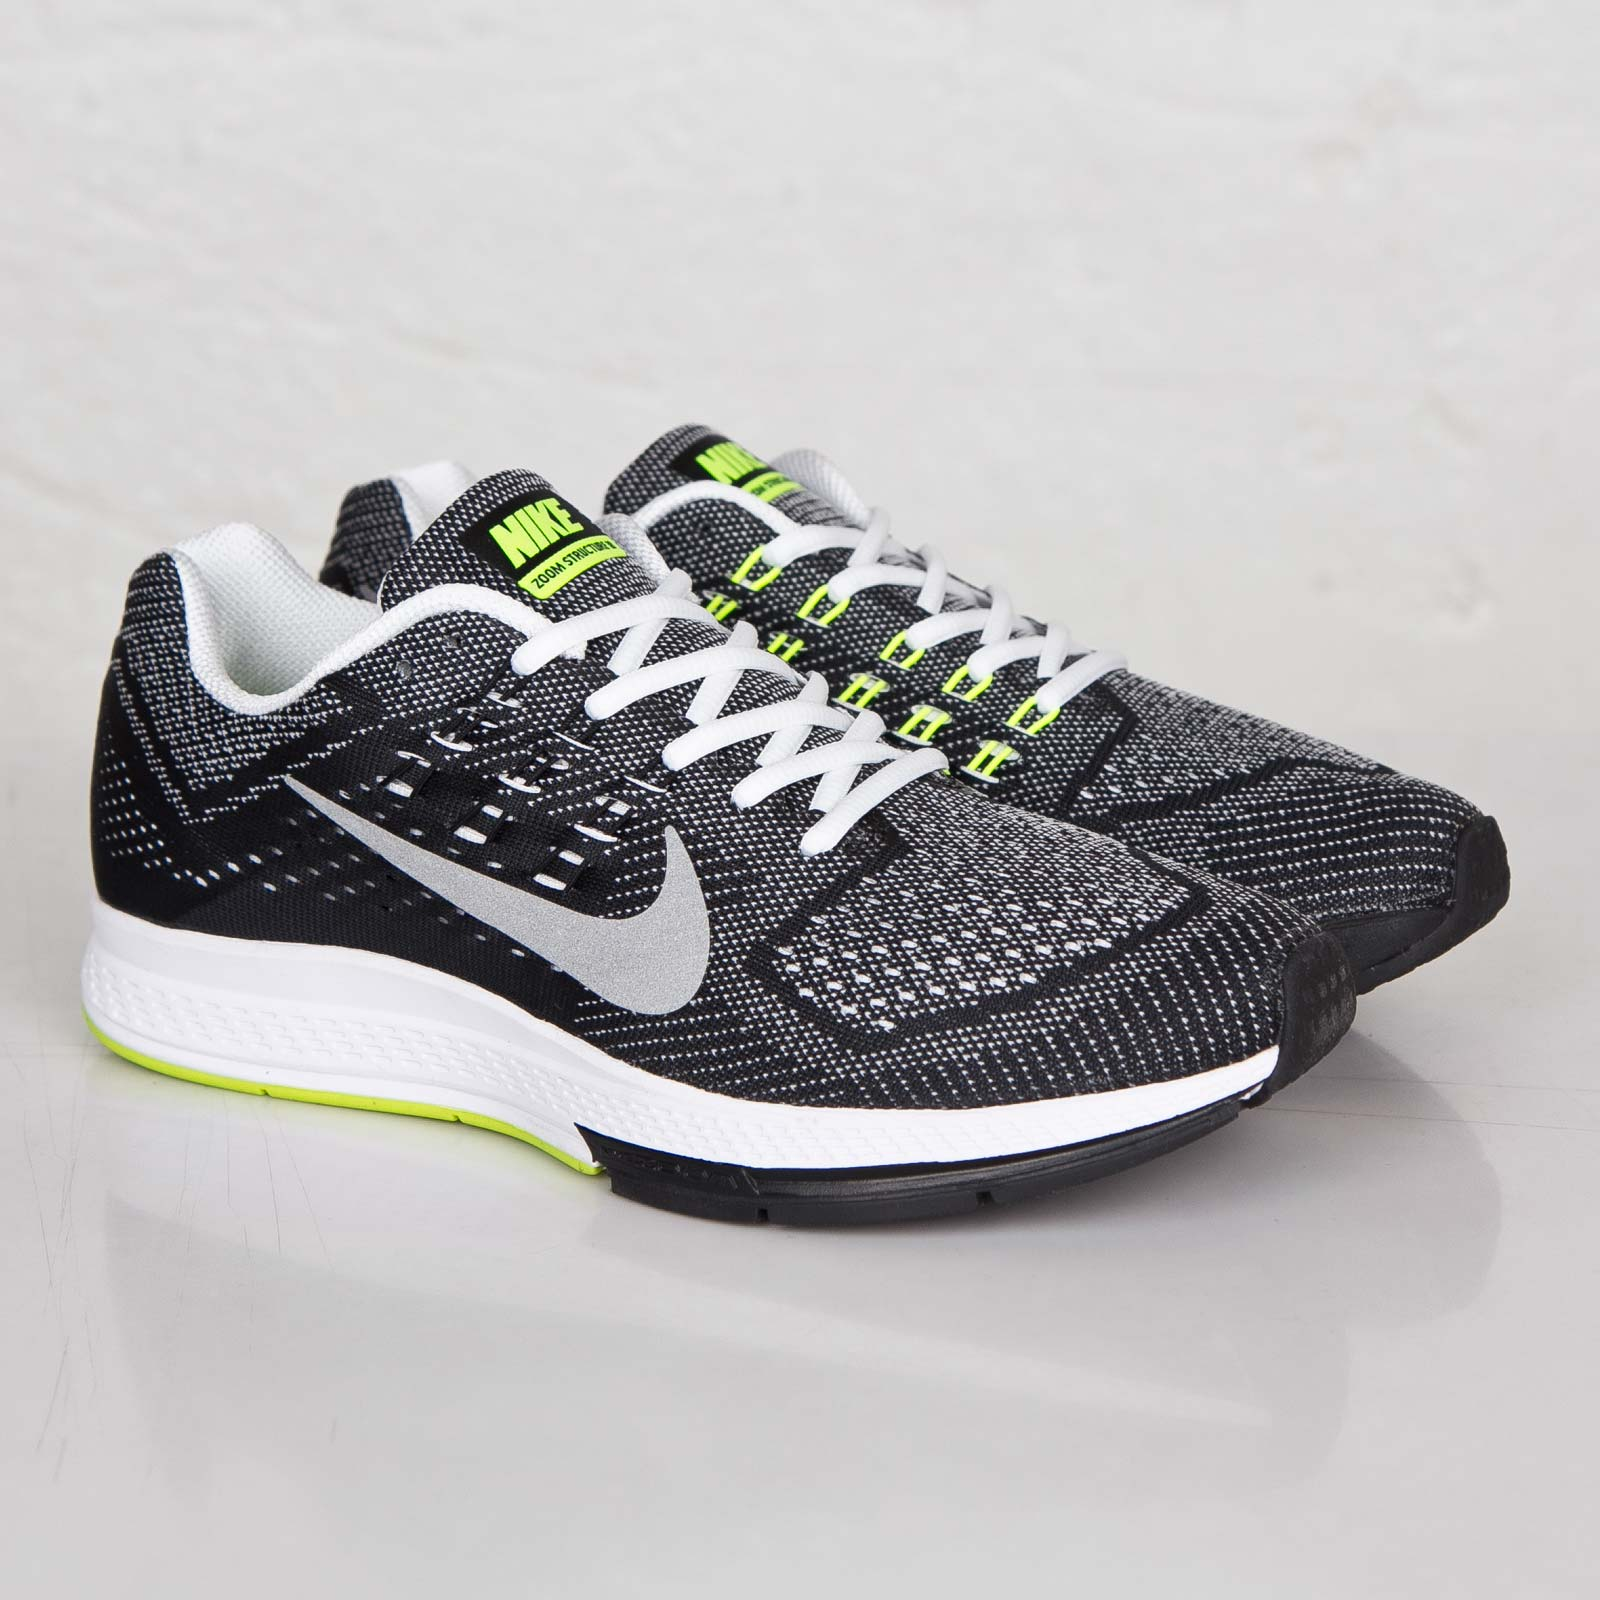 Nike Air Zoom Structure 18 683731 100 Sneakersnstuff I